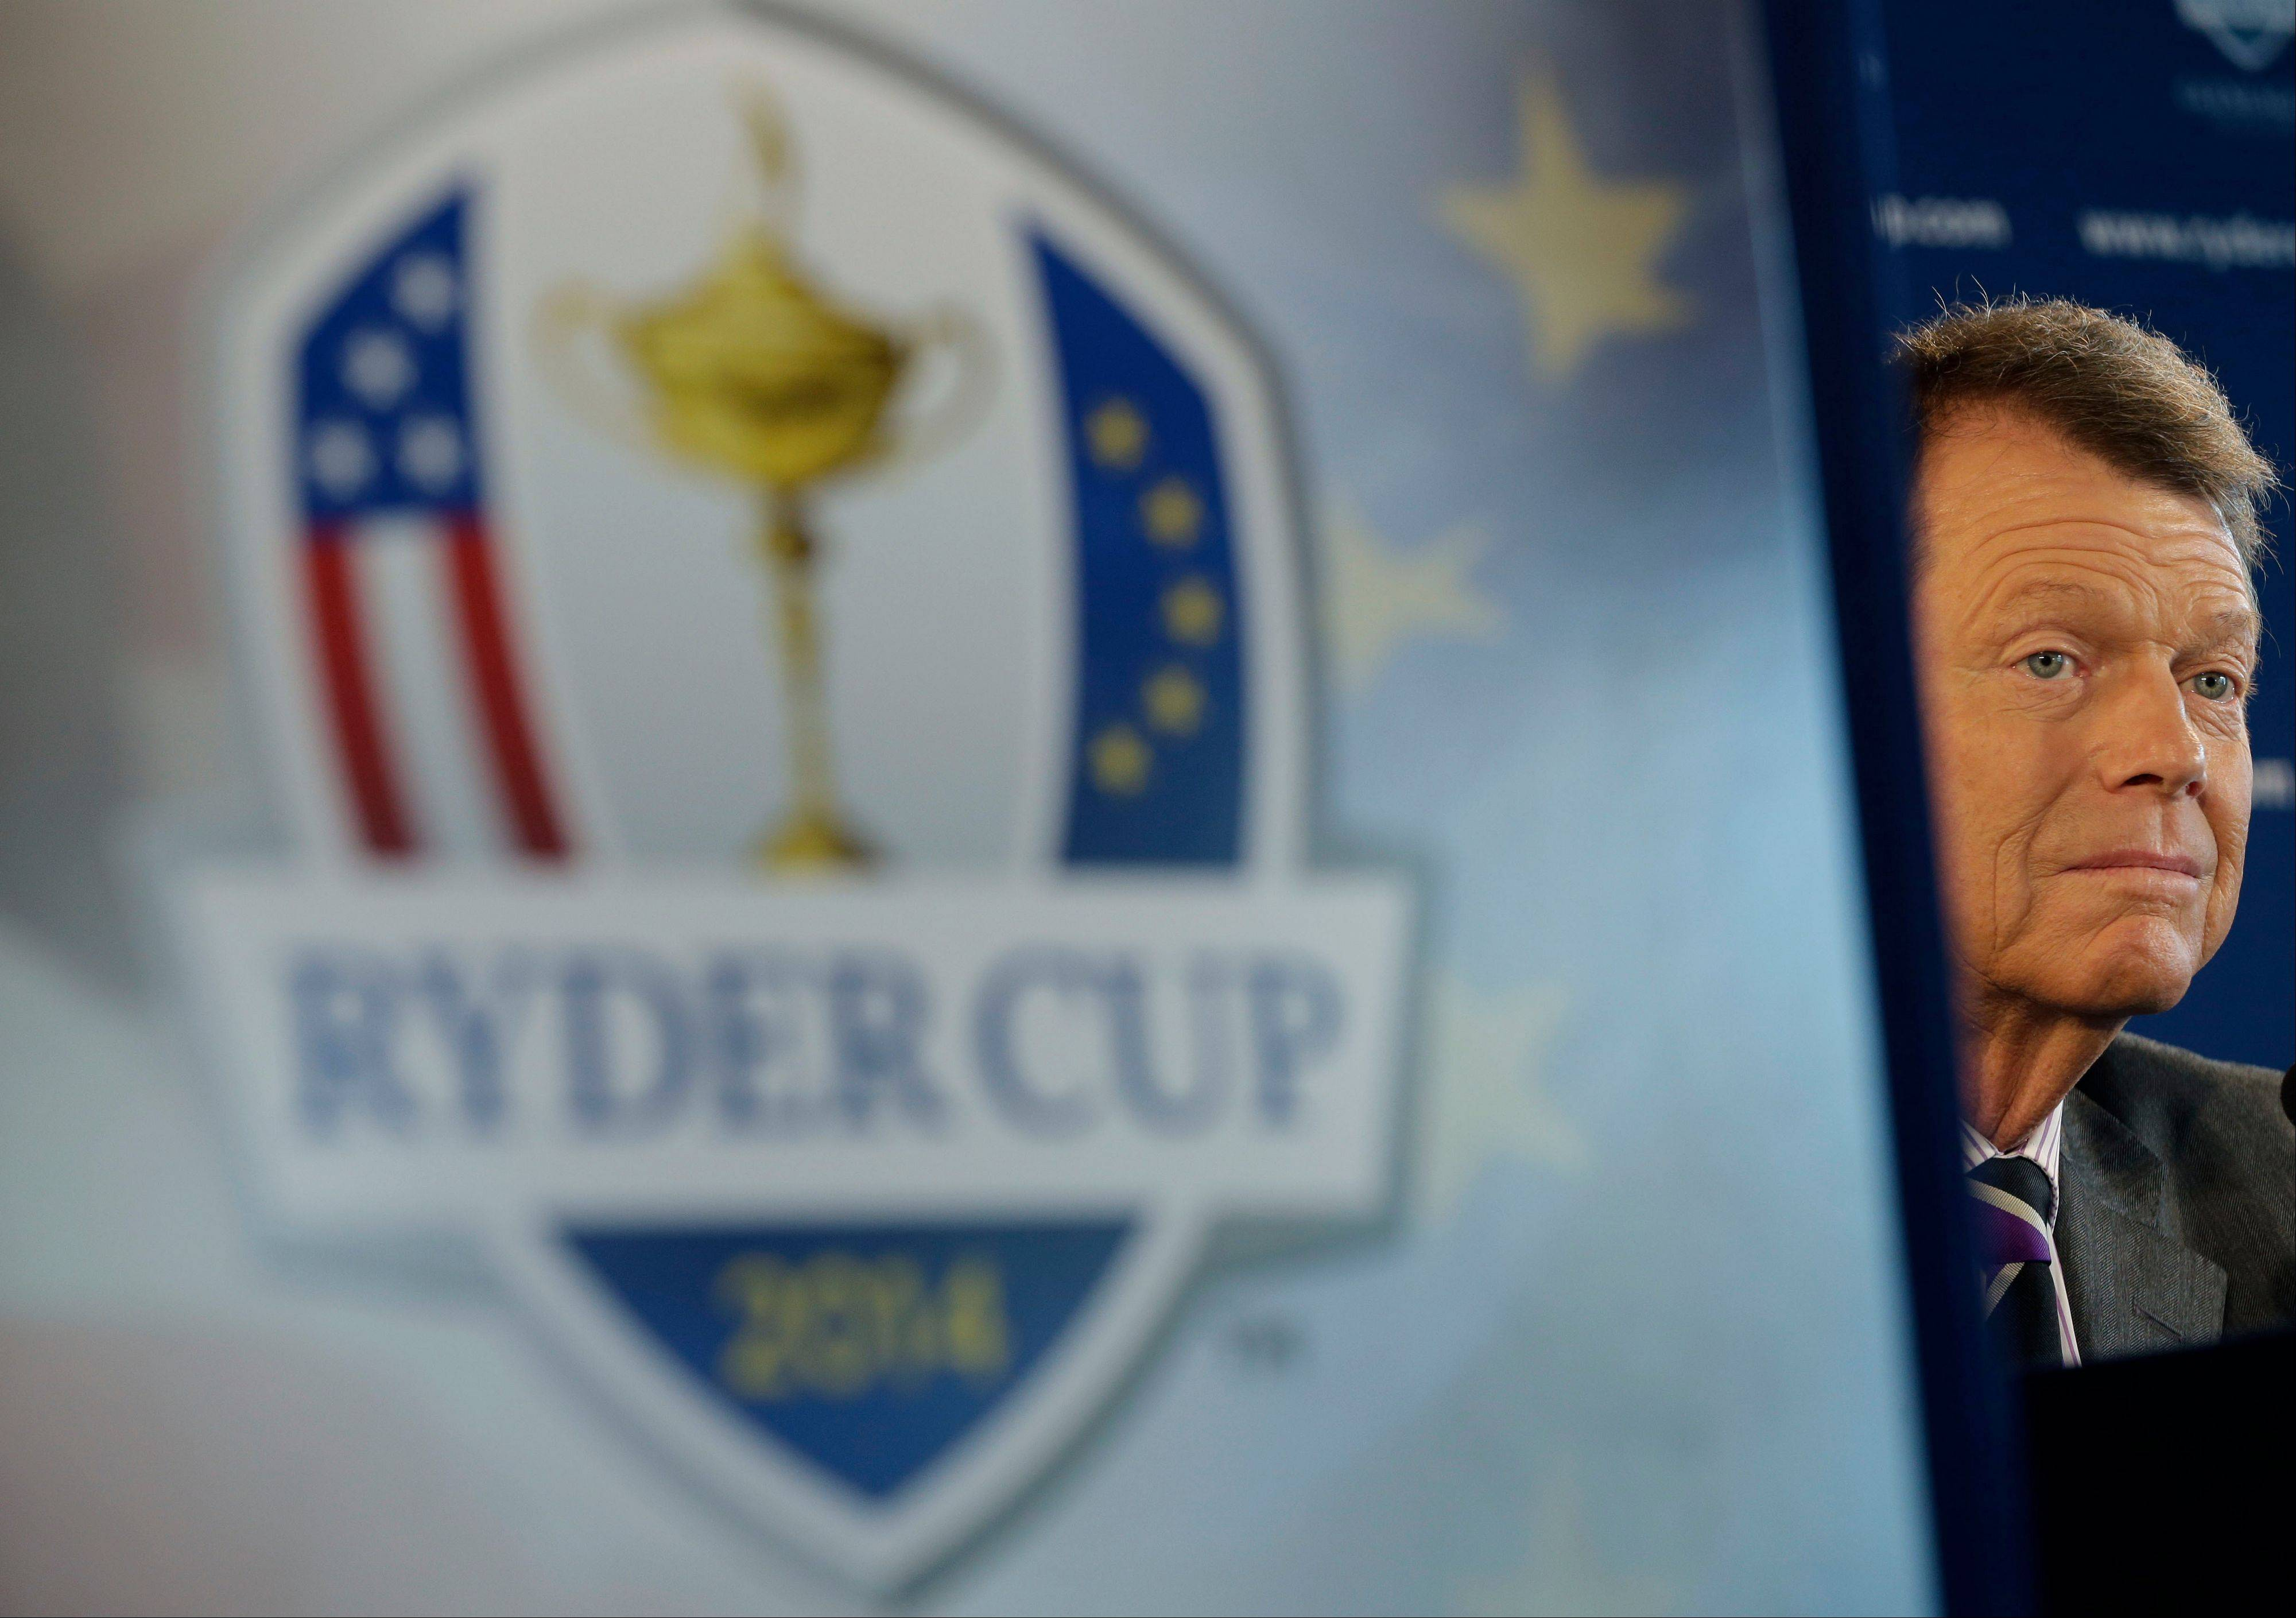 Tom Watson, the new Ryder Cup golf captain for Team USA, hopes to end two decades of losing in Europe.